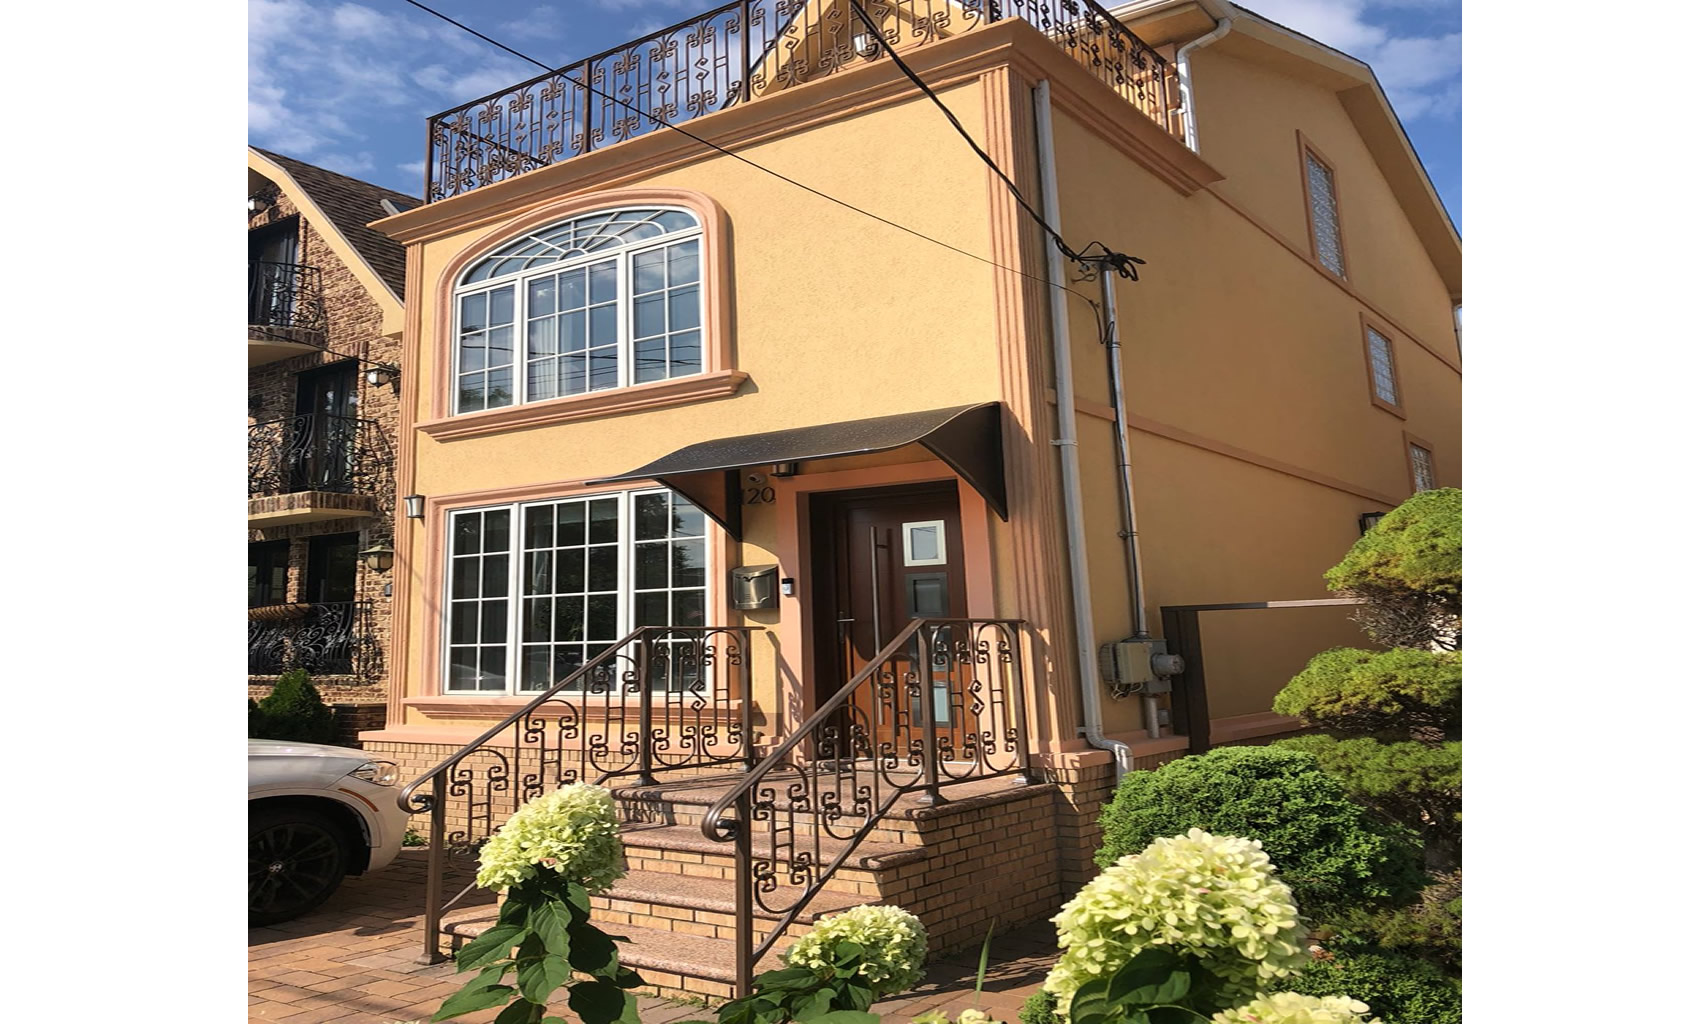 Fiberama Windows Doors Awnings Patios In New York